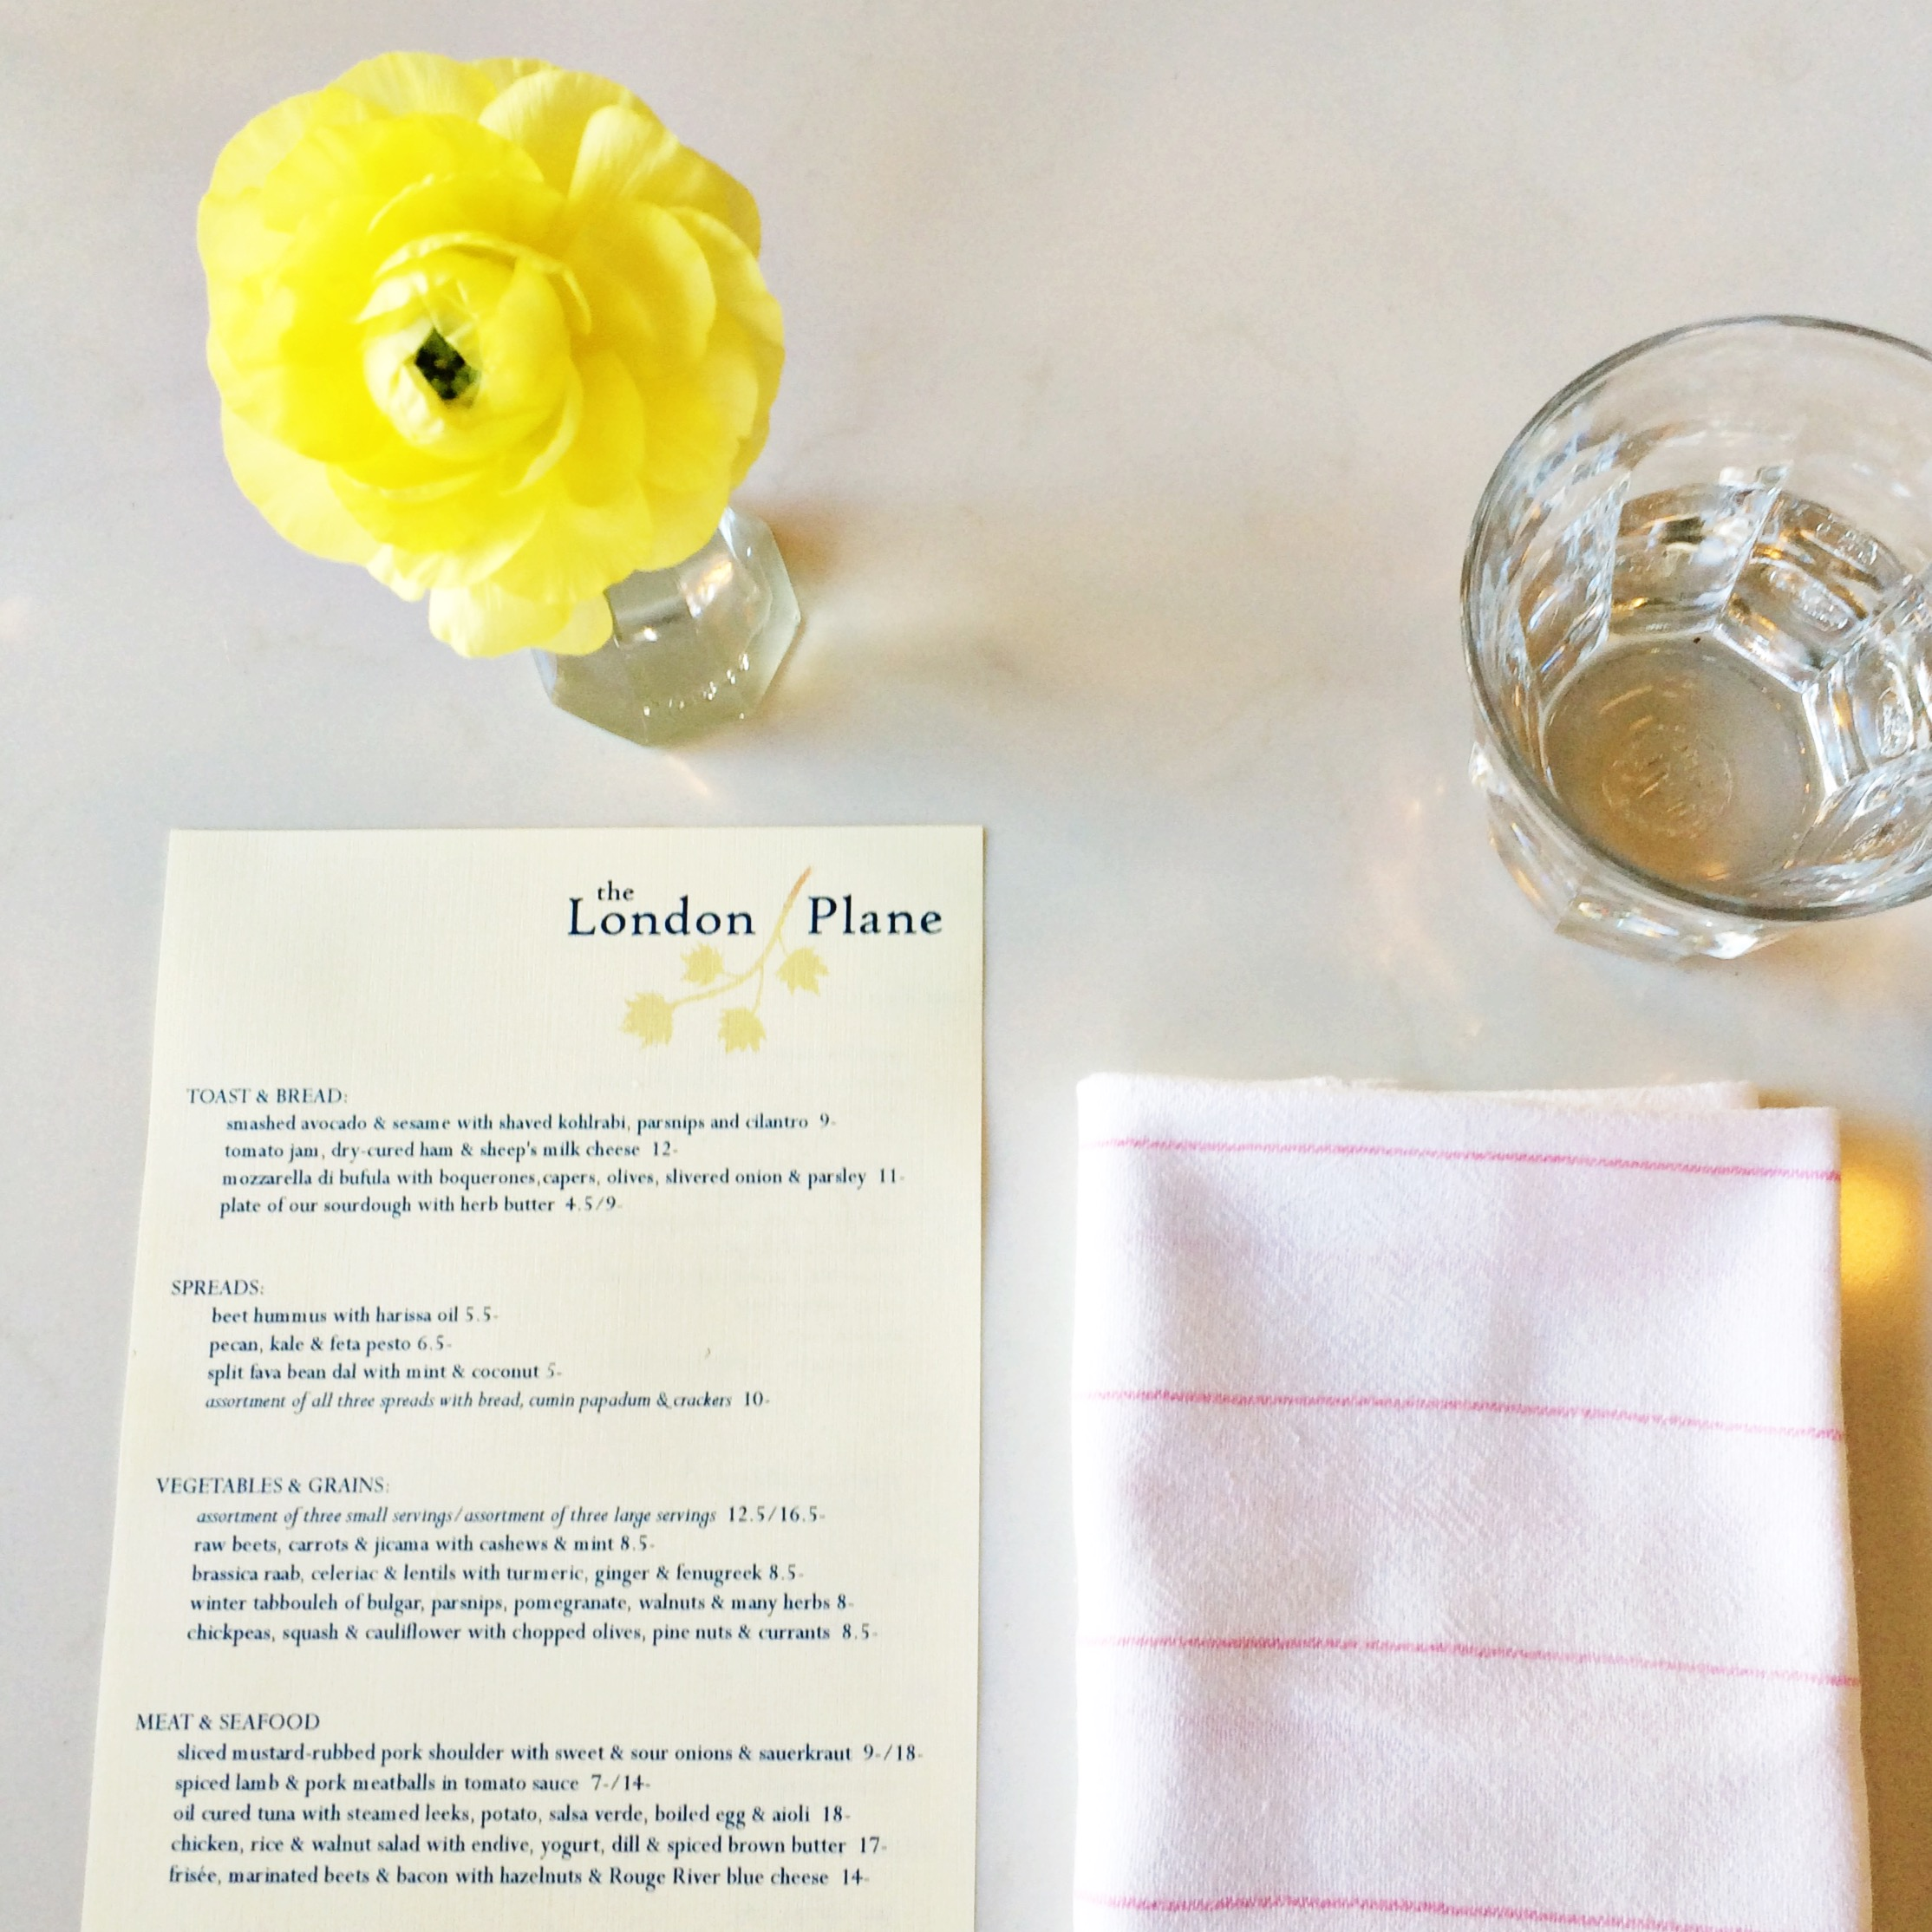 The London Plane Menu